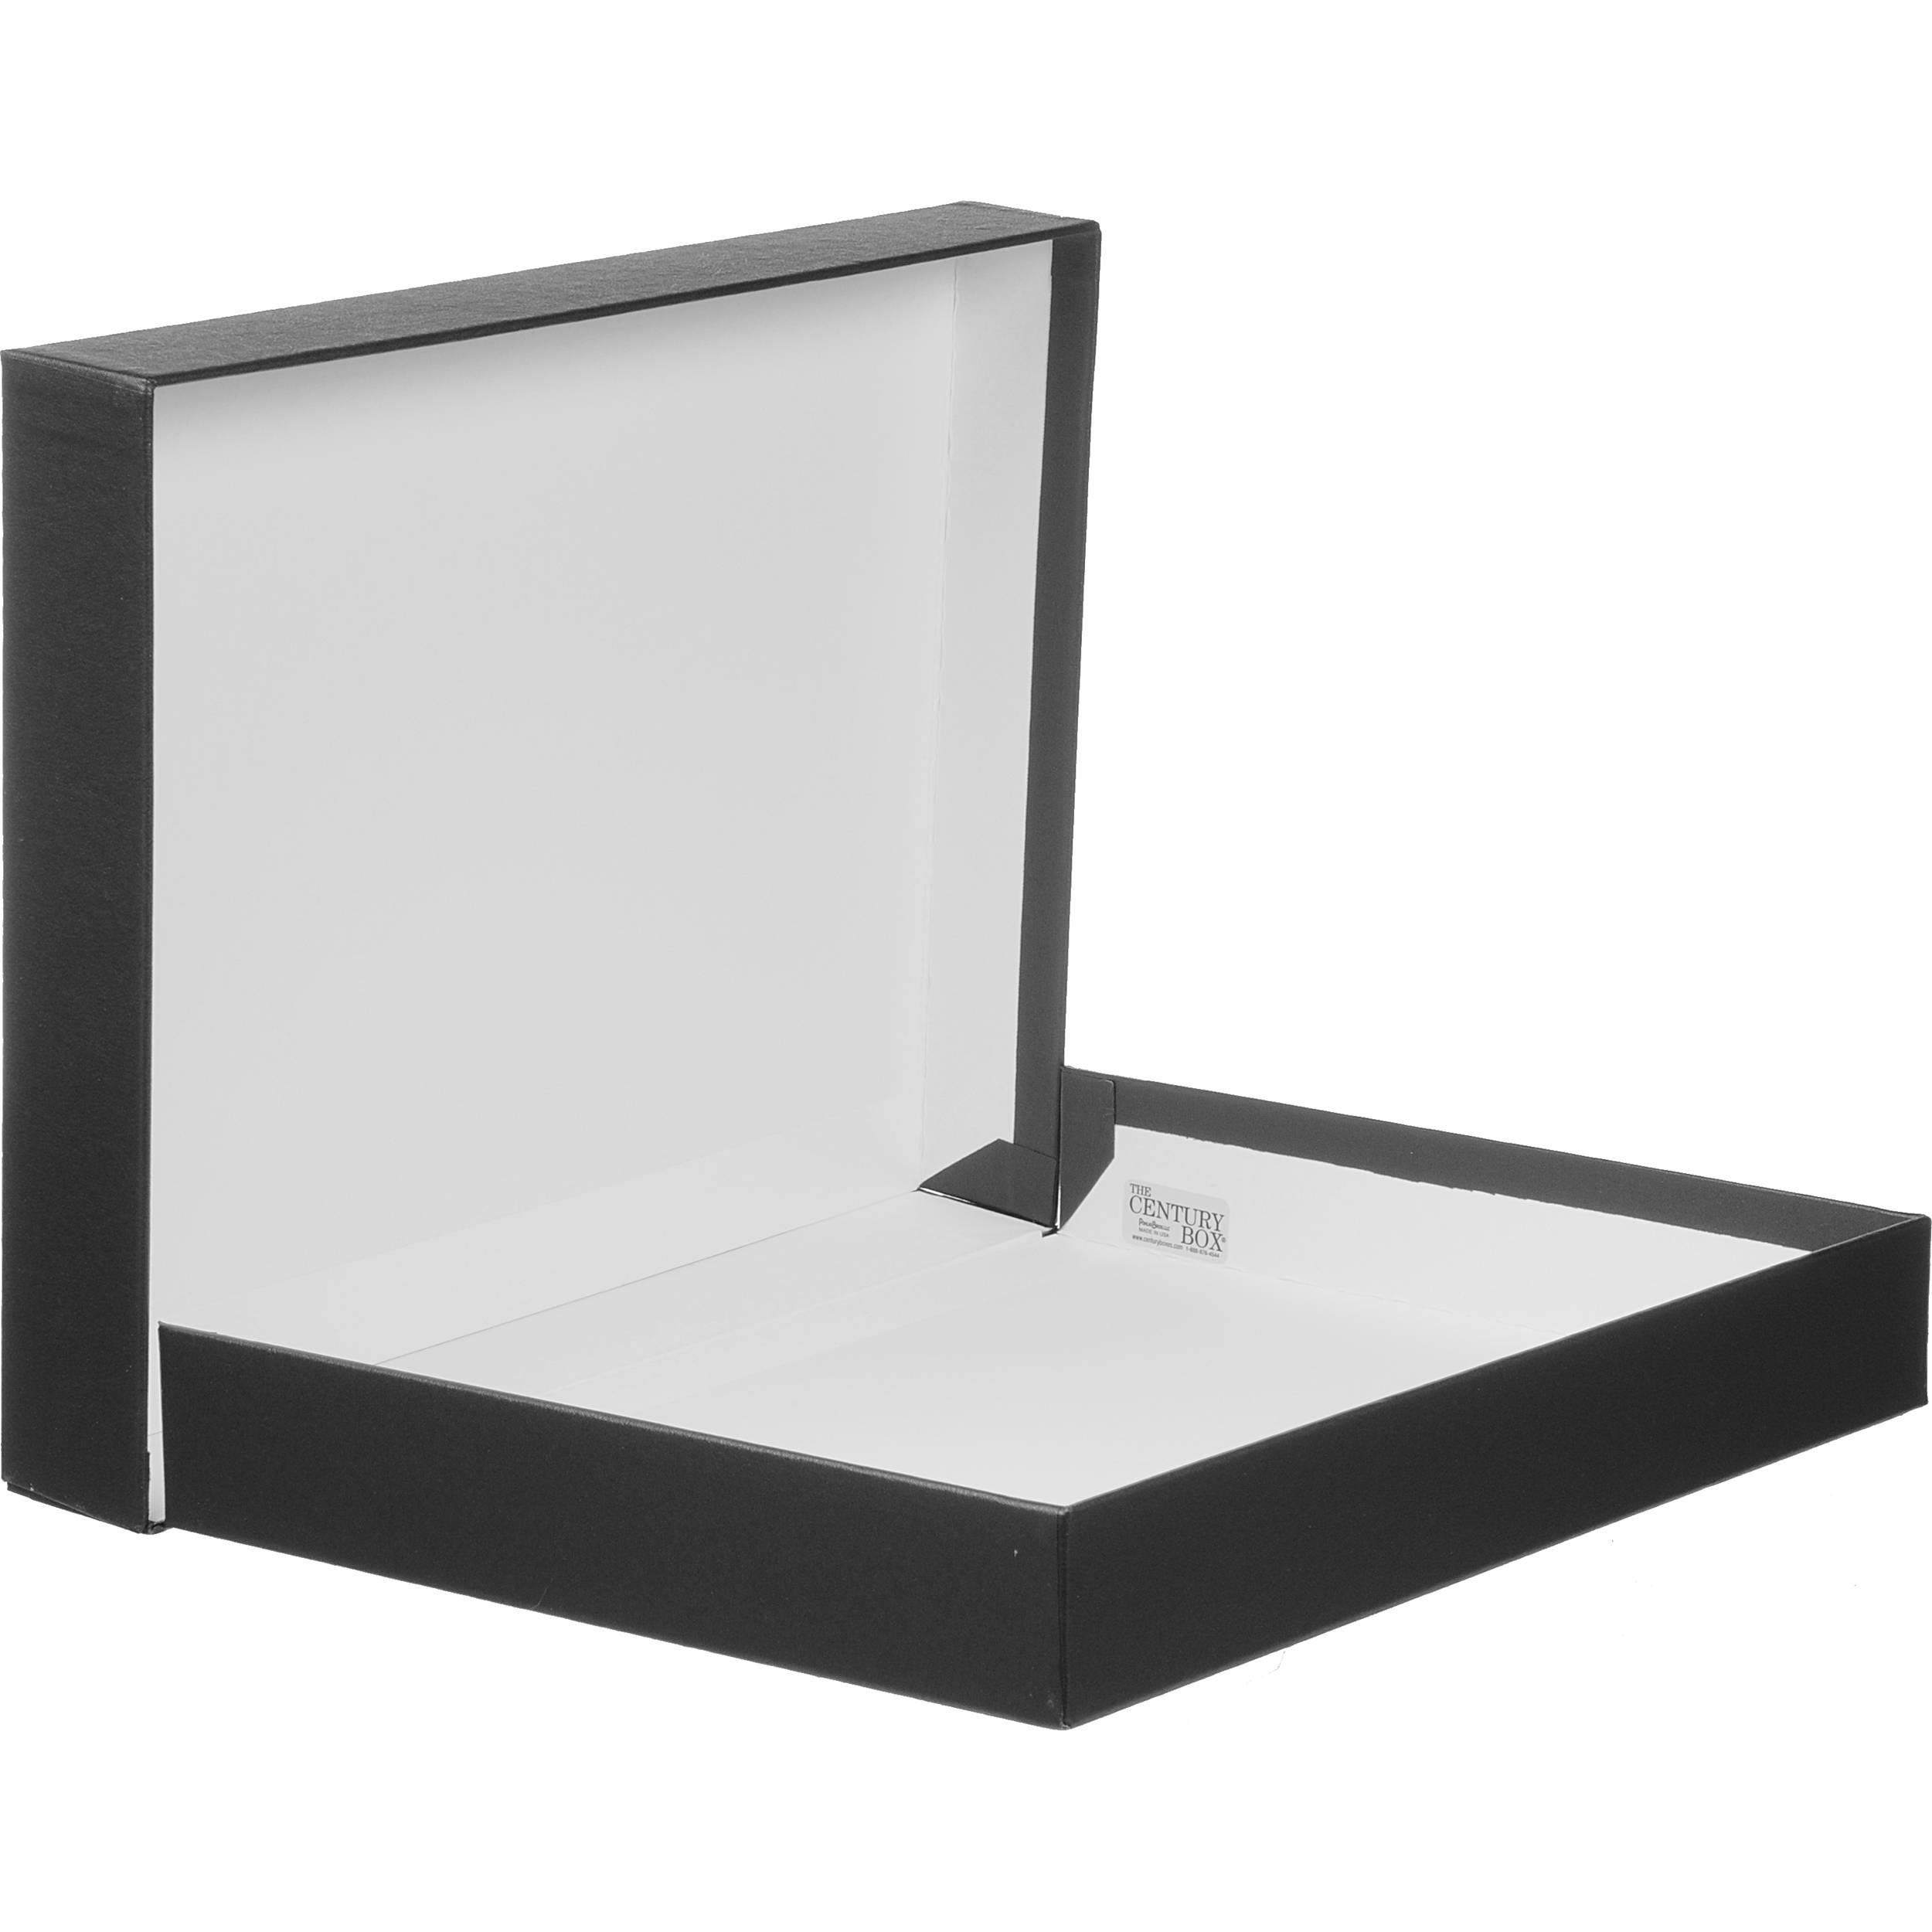 Prat Century Storage Box, One-Piece Clamshell Construction with Fabric Cover, Lined with Acid-Free White Paper, 24 X 20 X 2 inches, Black (1124) by Century (Image #1)